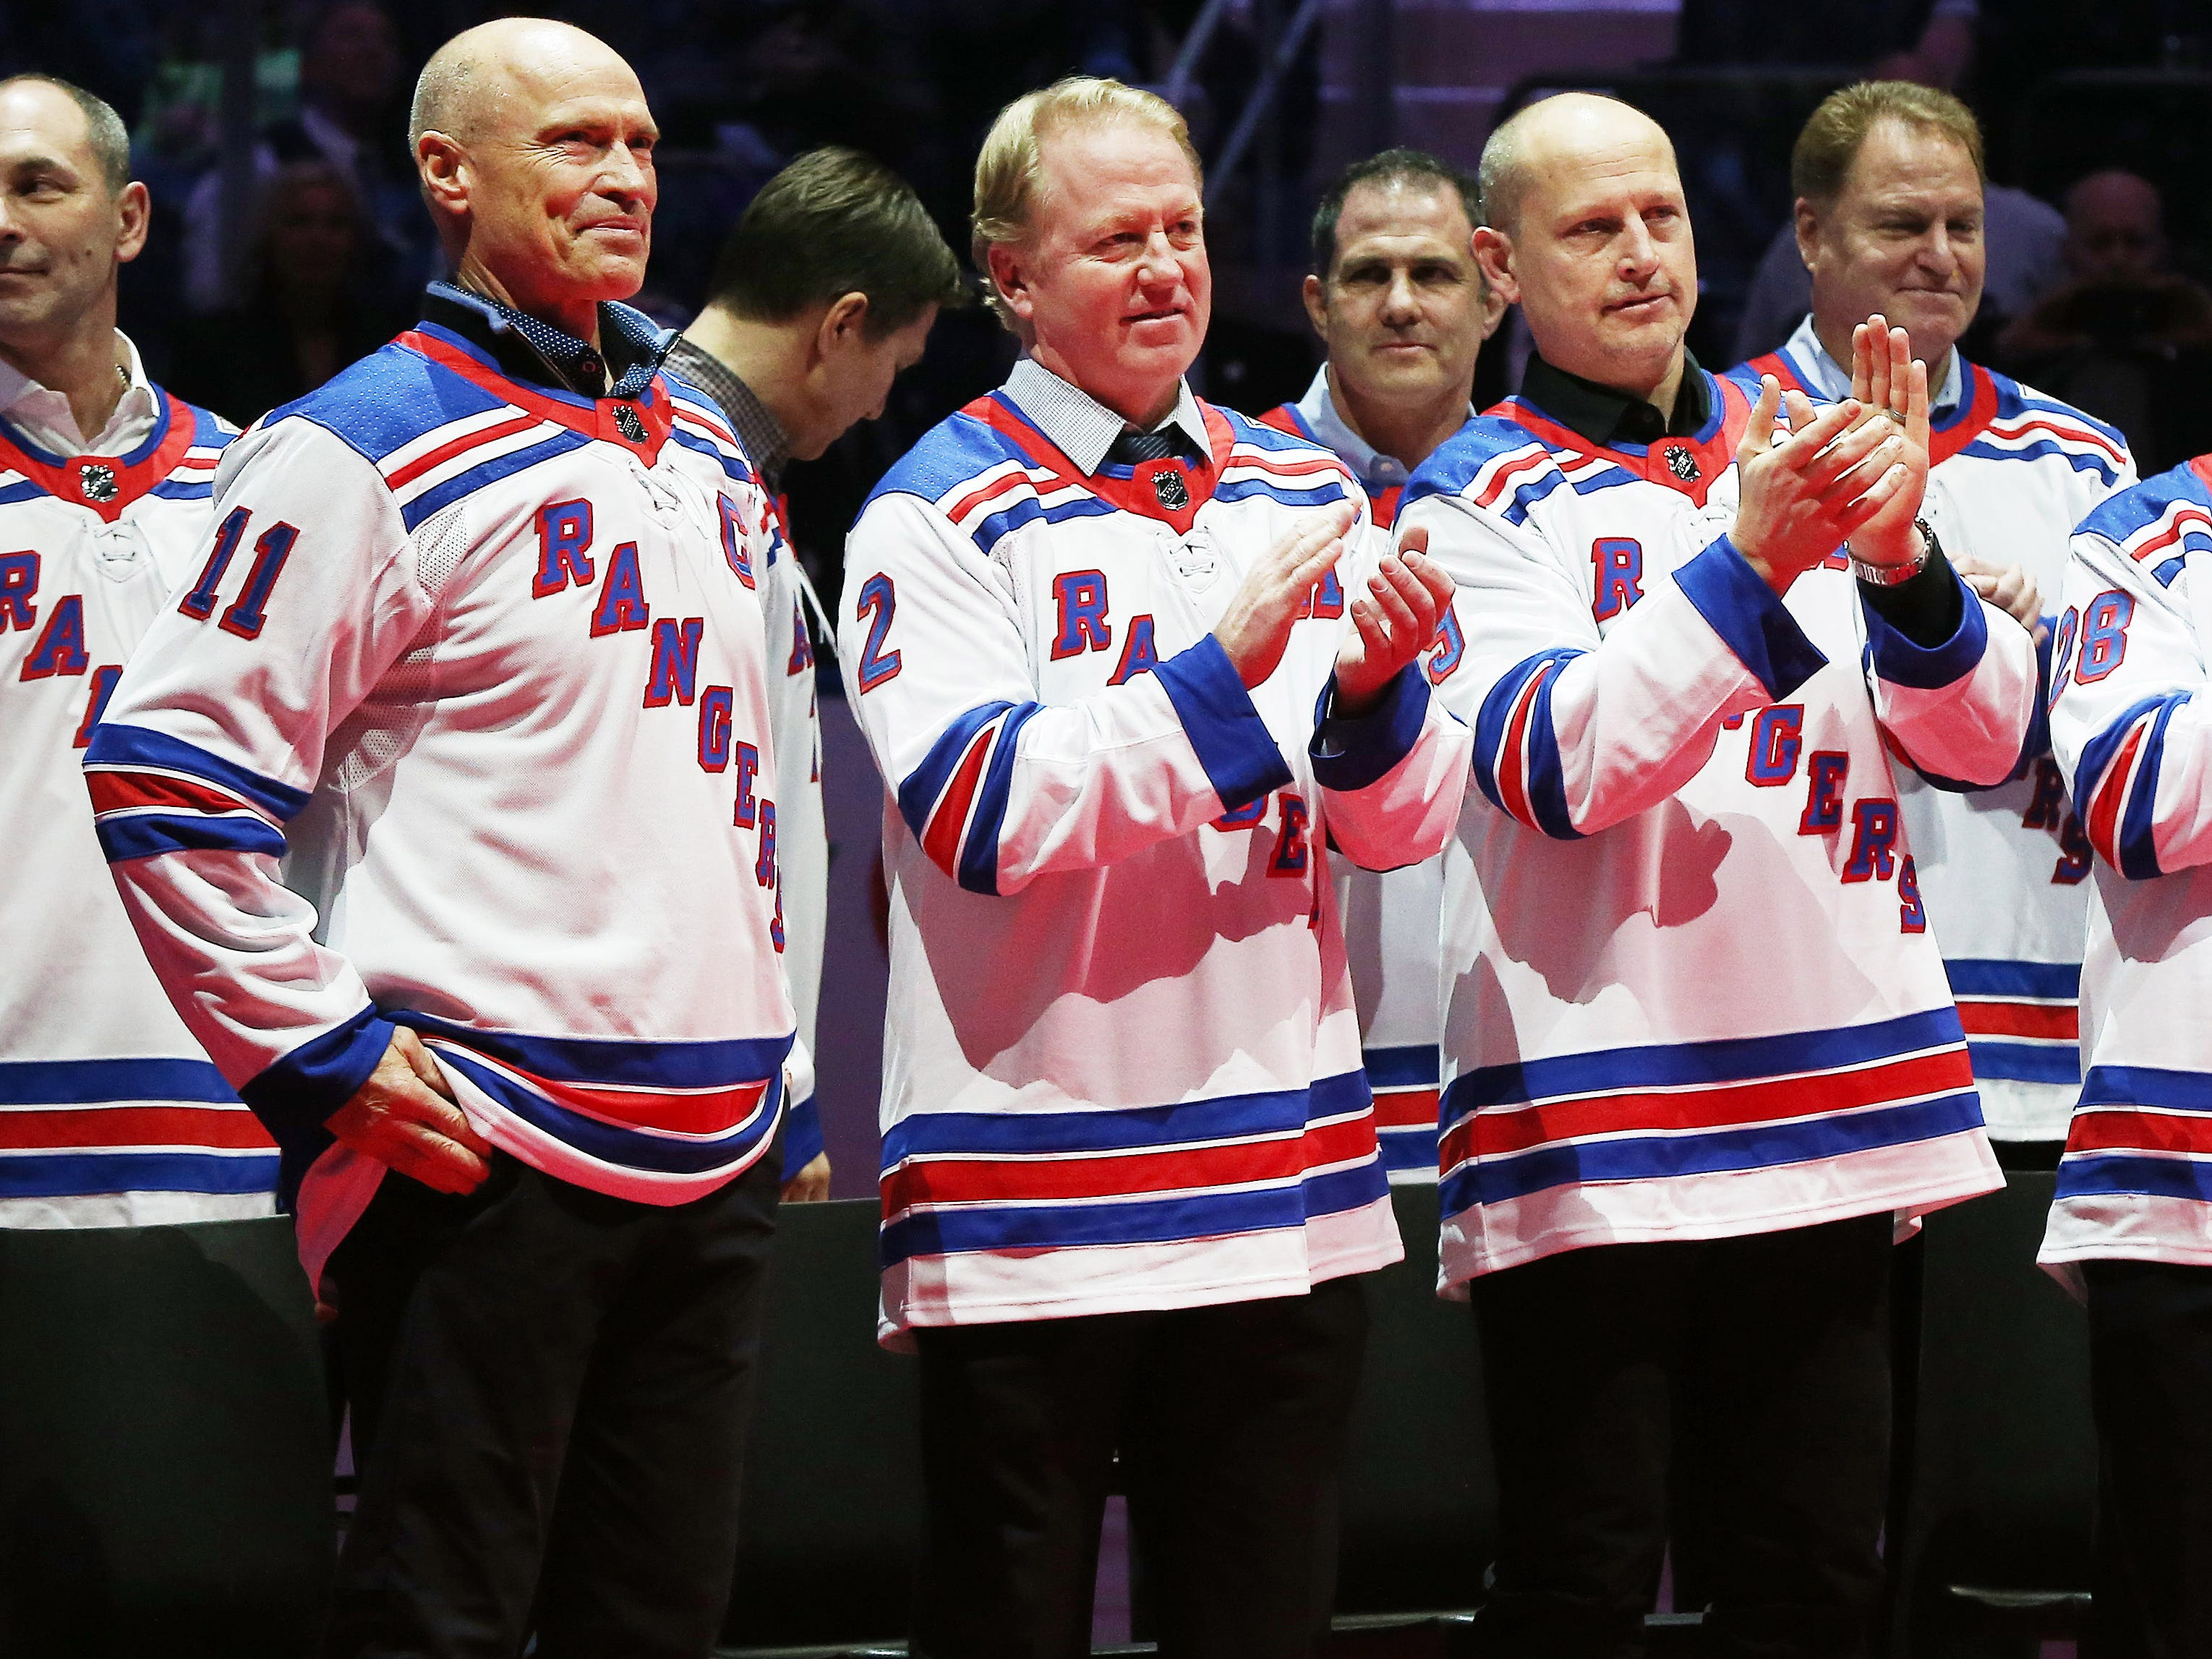 Feb 8, 2019; New York, NY, USA; Former New York Rangers captain Mark Messier associate catains Brian Leetch and Adam Graves look on during the ceremony honoring the 1994 Stanley Cup Championship New York Rangers team at Madison Square Garden.